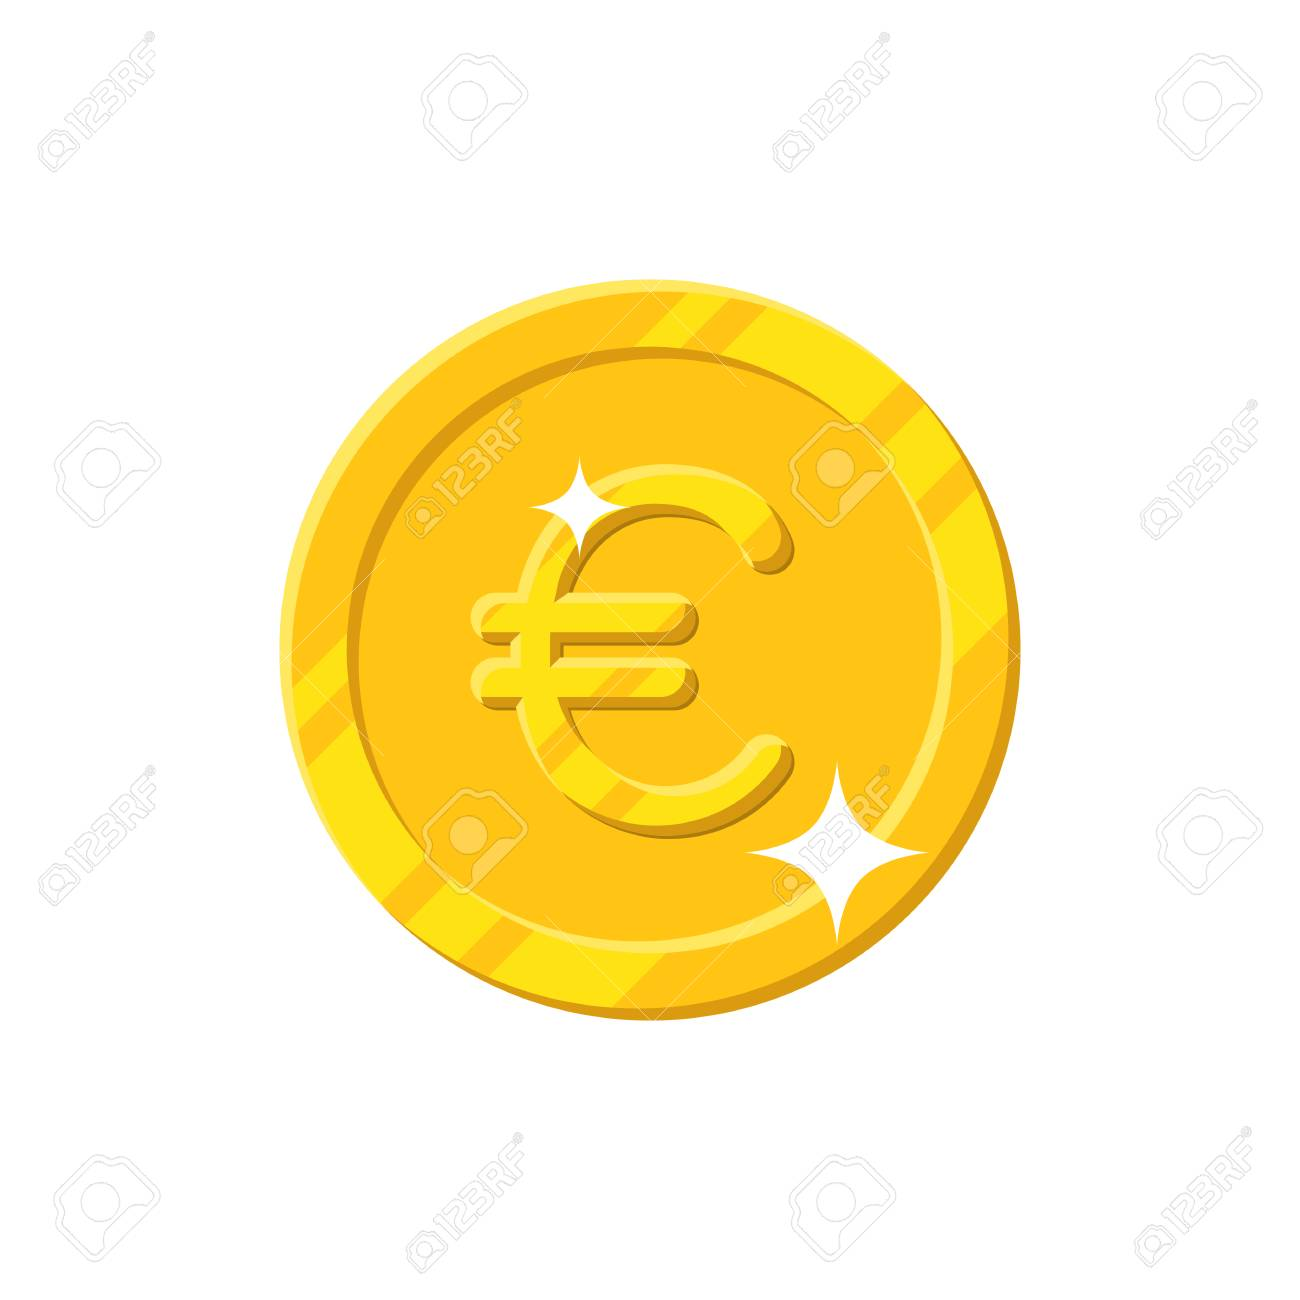 Gold Euro Coin Cartoon Style Isolated Shiny Gold Euro Sign For